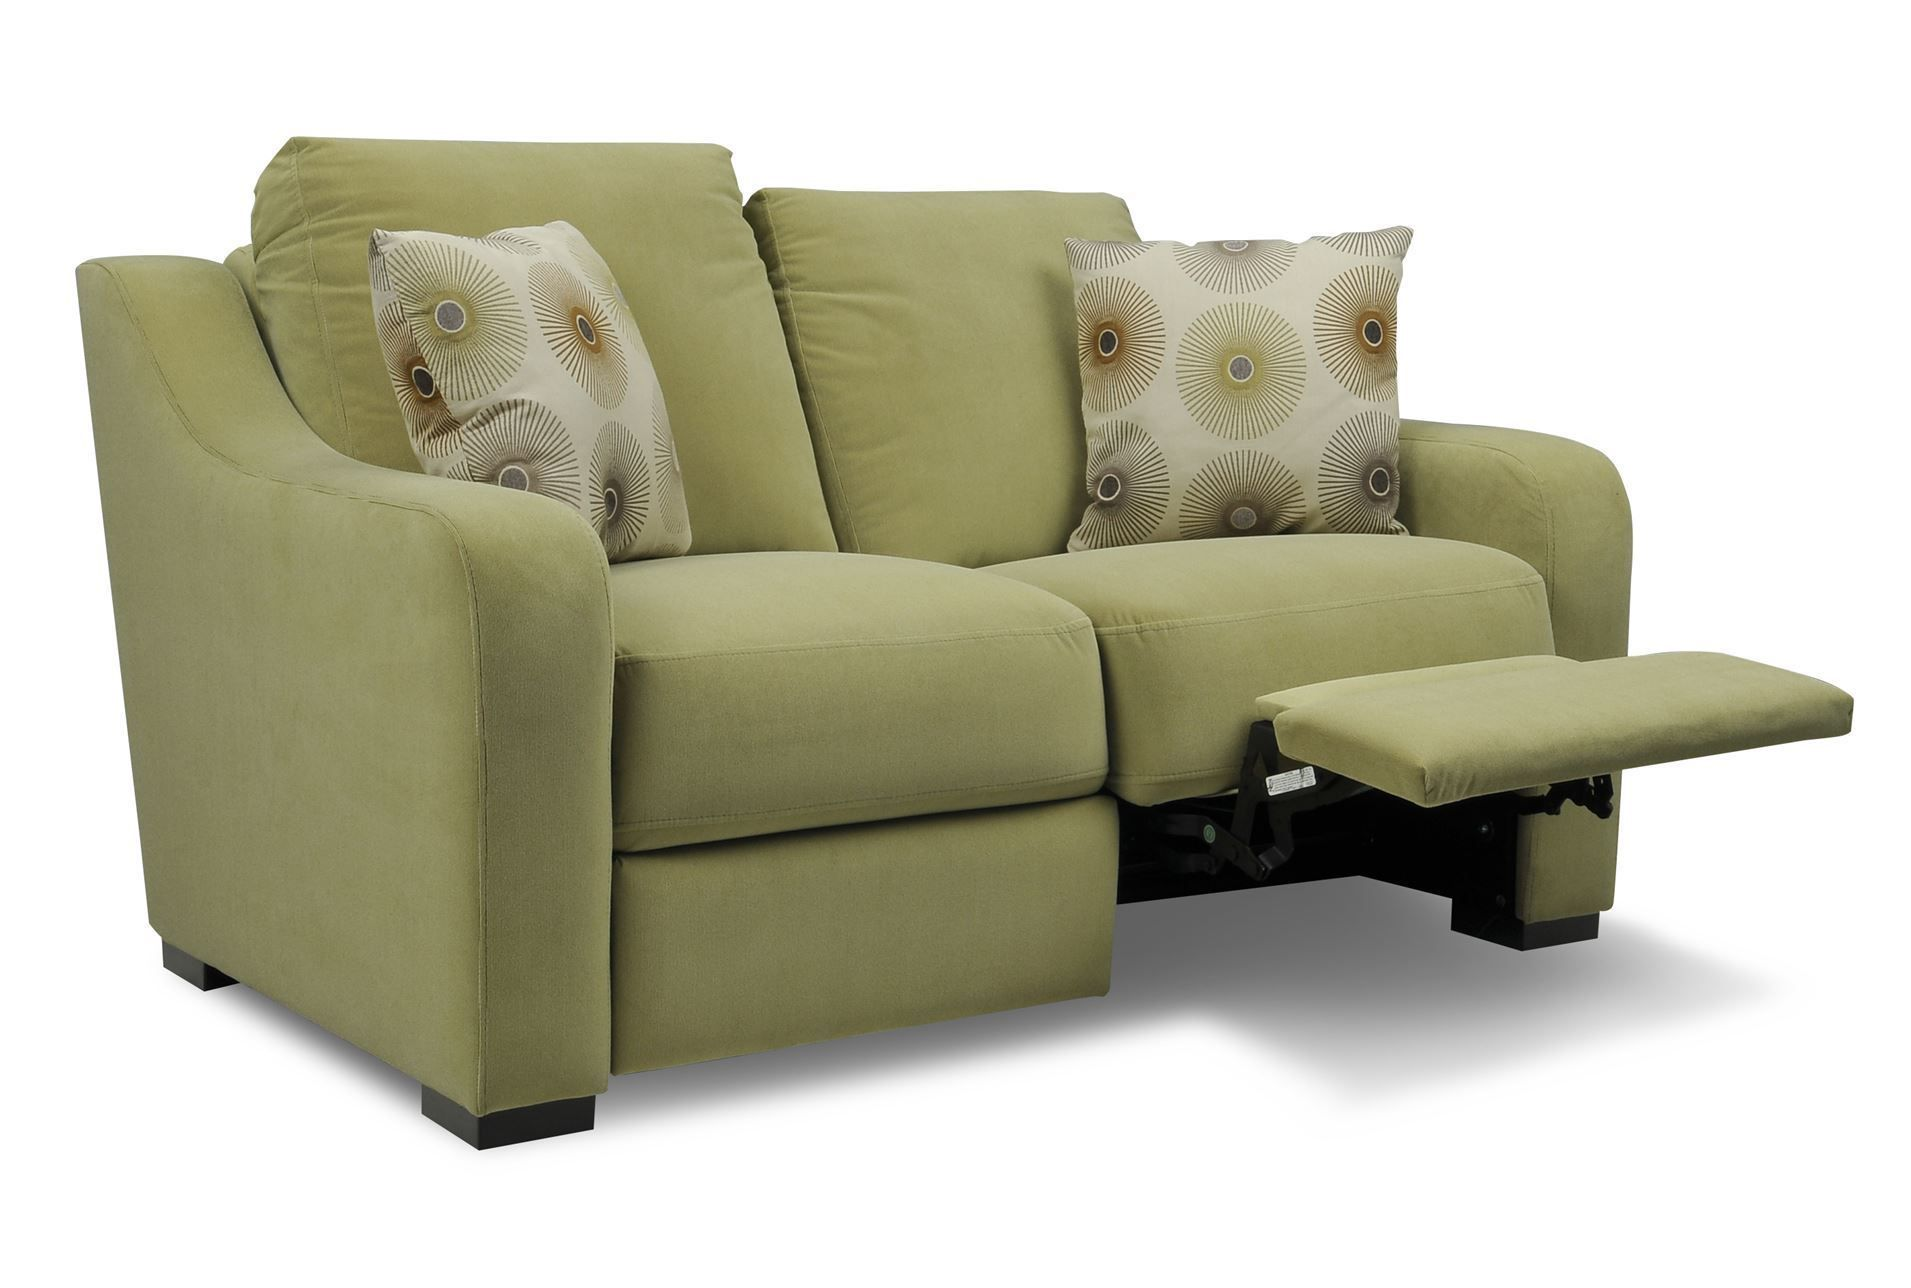 Remarkable Reclining Loveseat With Console Astoria Fabric